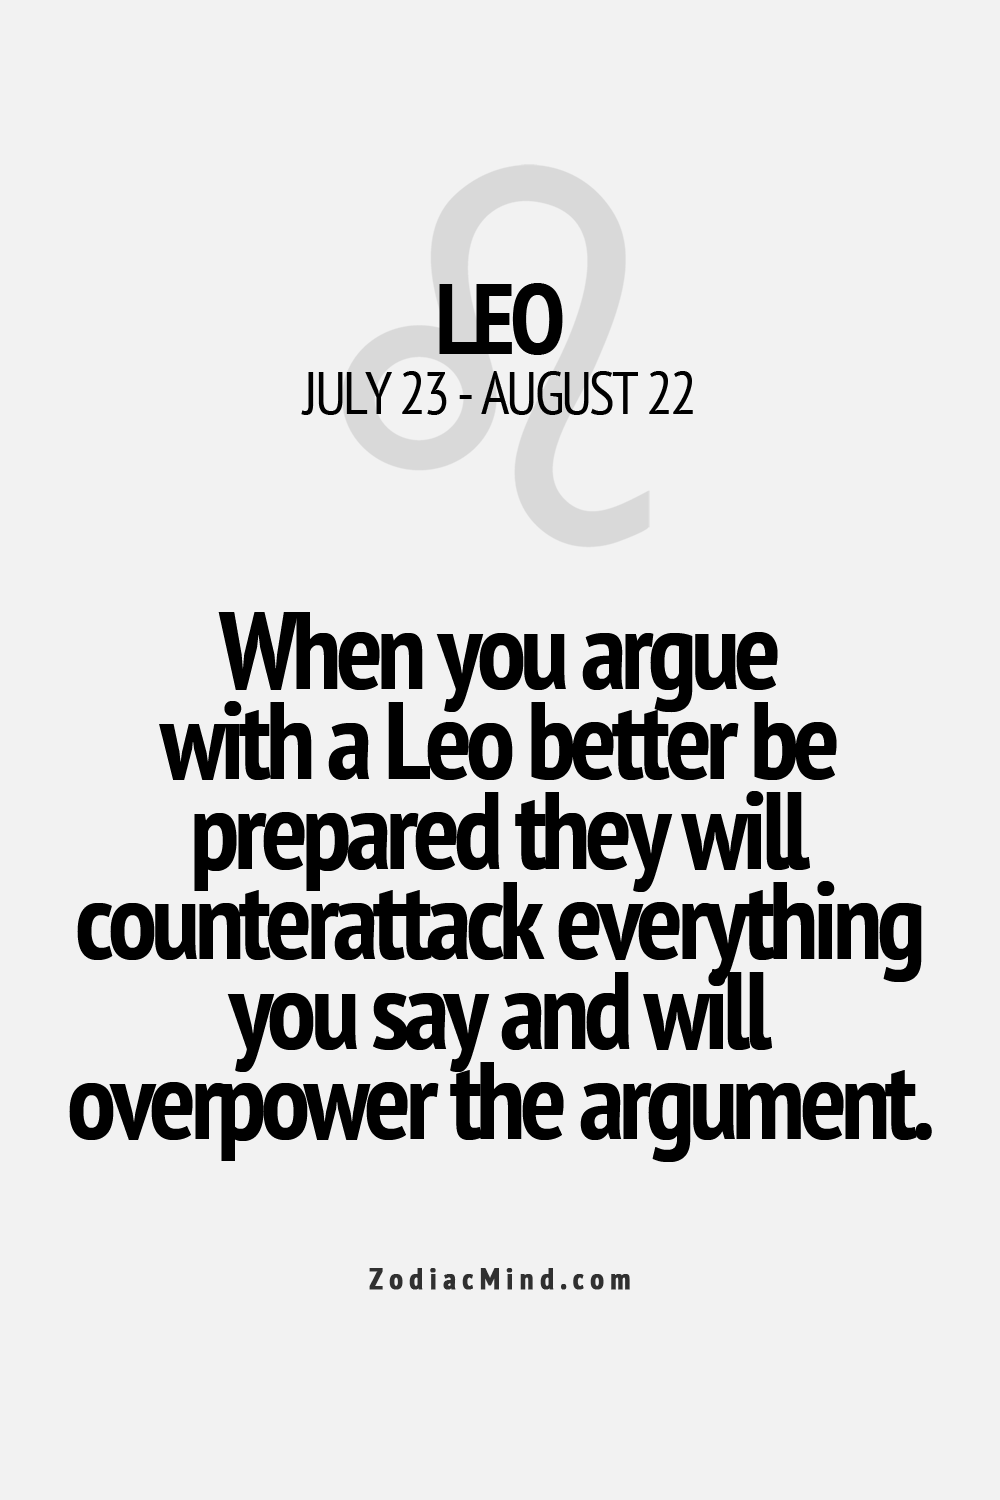 Not Saying This Is Completely True, But I Do Feel That 99.9% Of The Times In My Arguments X3